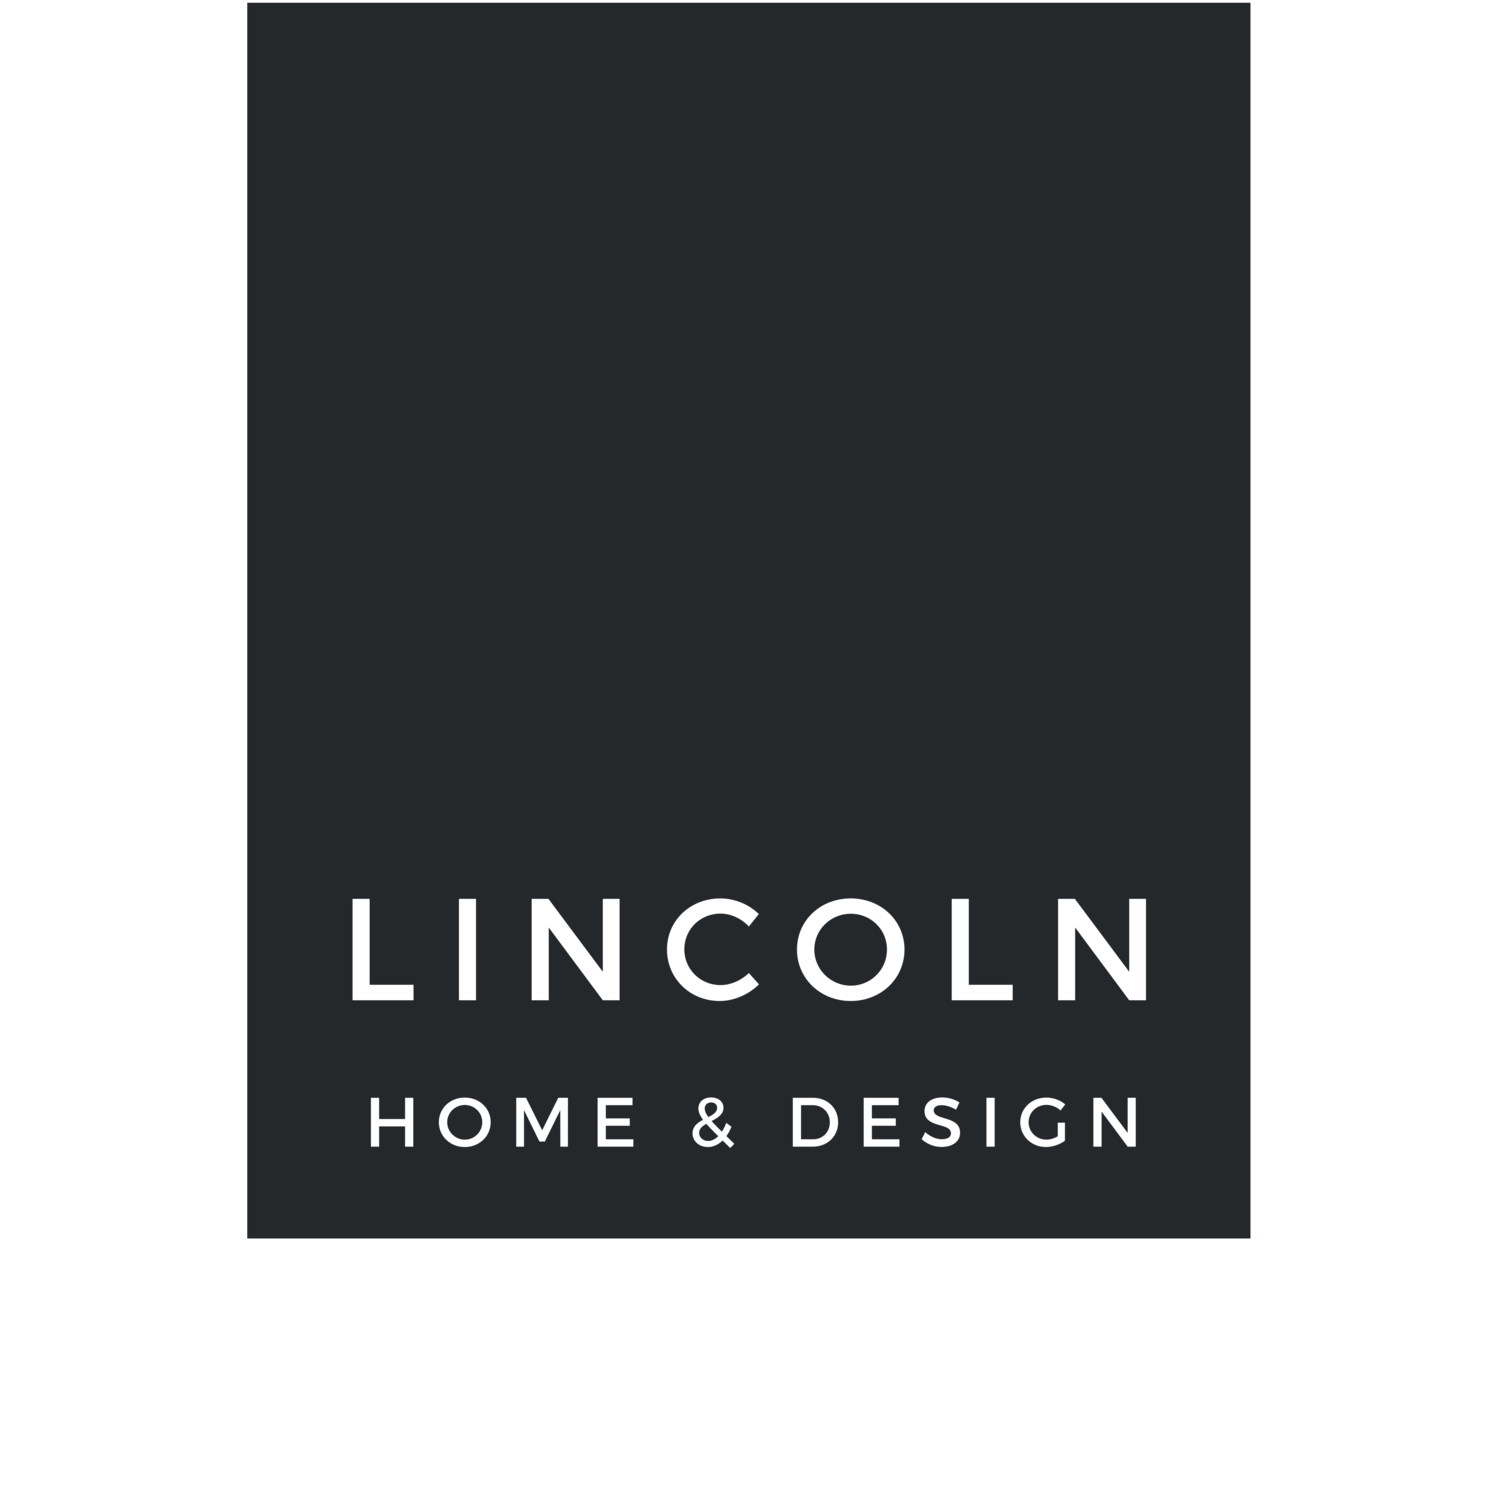 Lincoln Home & Design